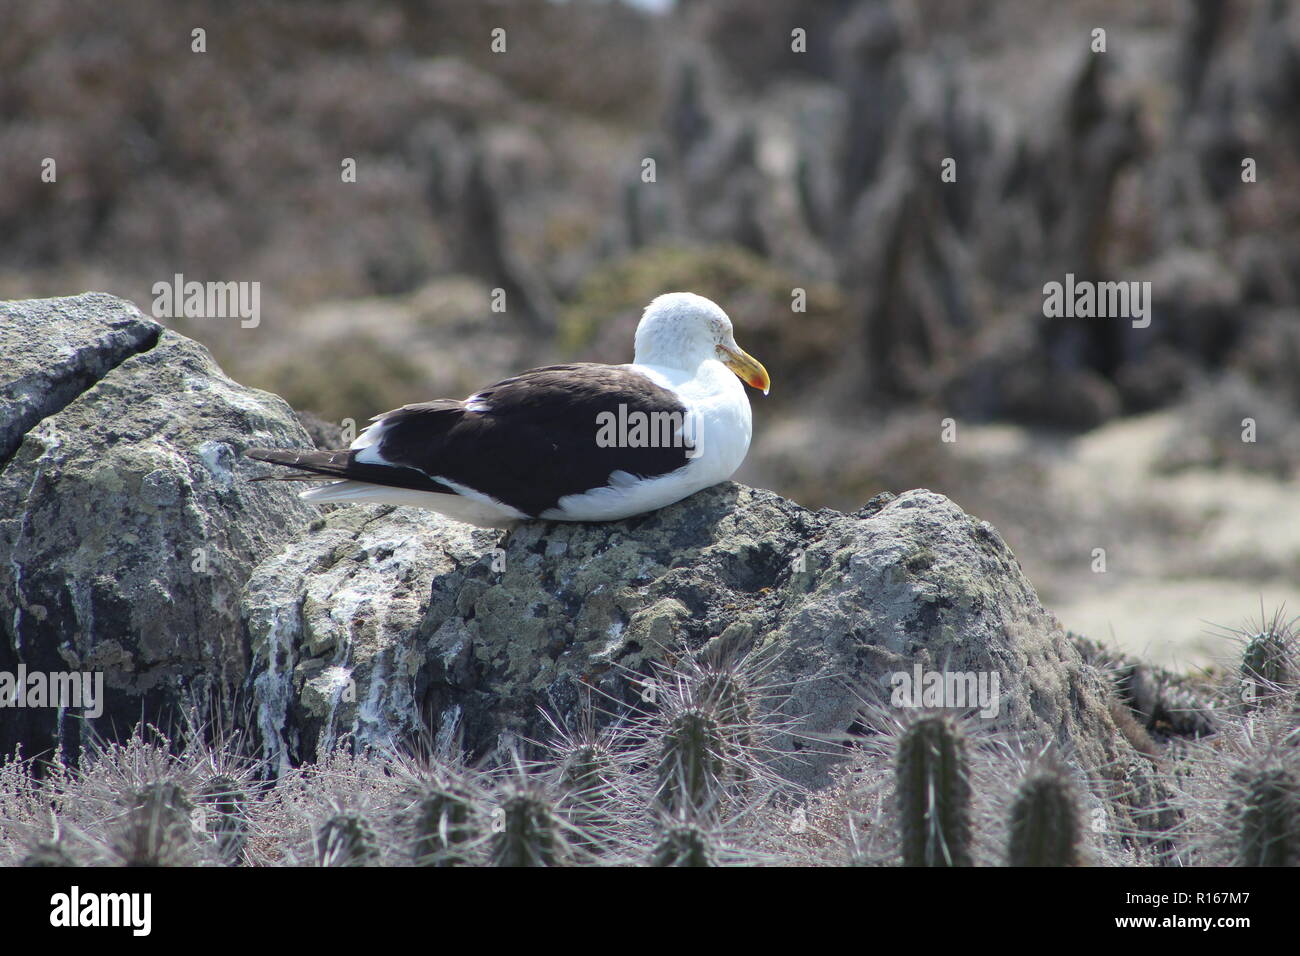 Seagull resting in the morning over rock of Isla Damas, Chile. Stock Photo